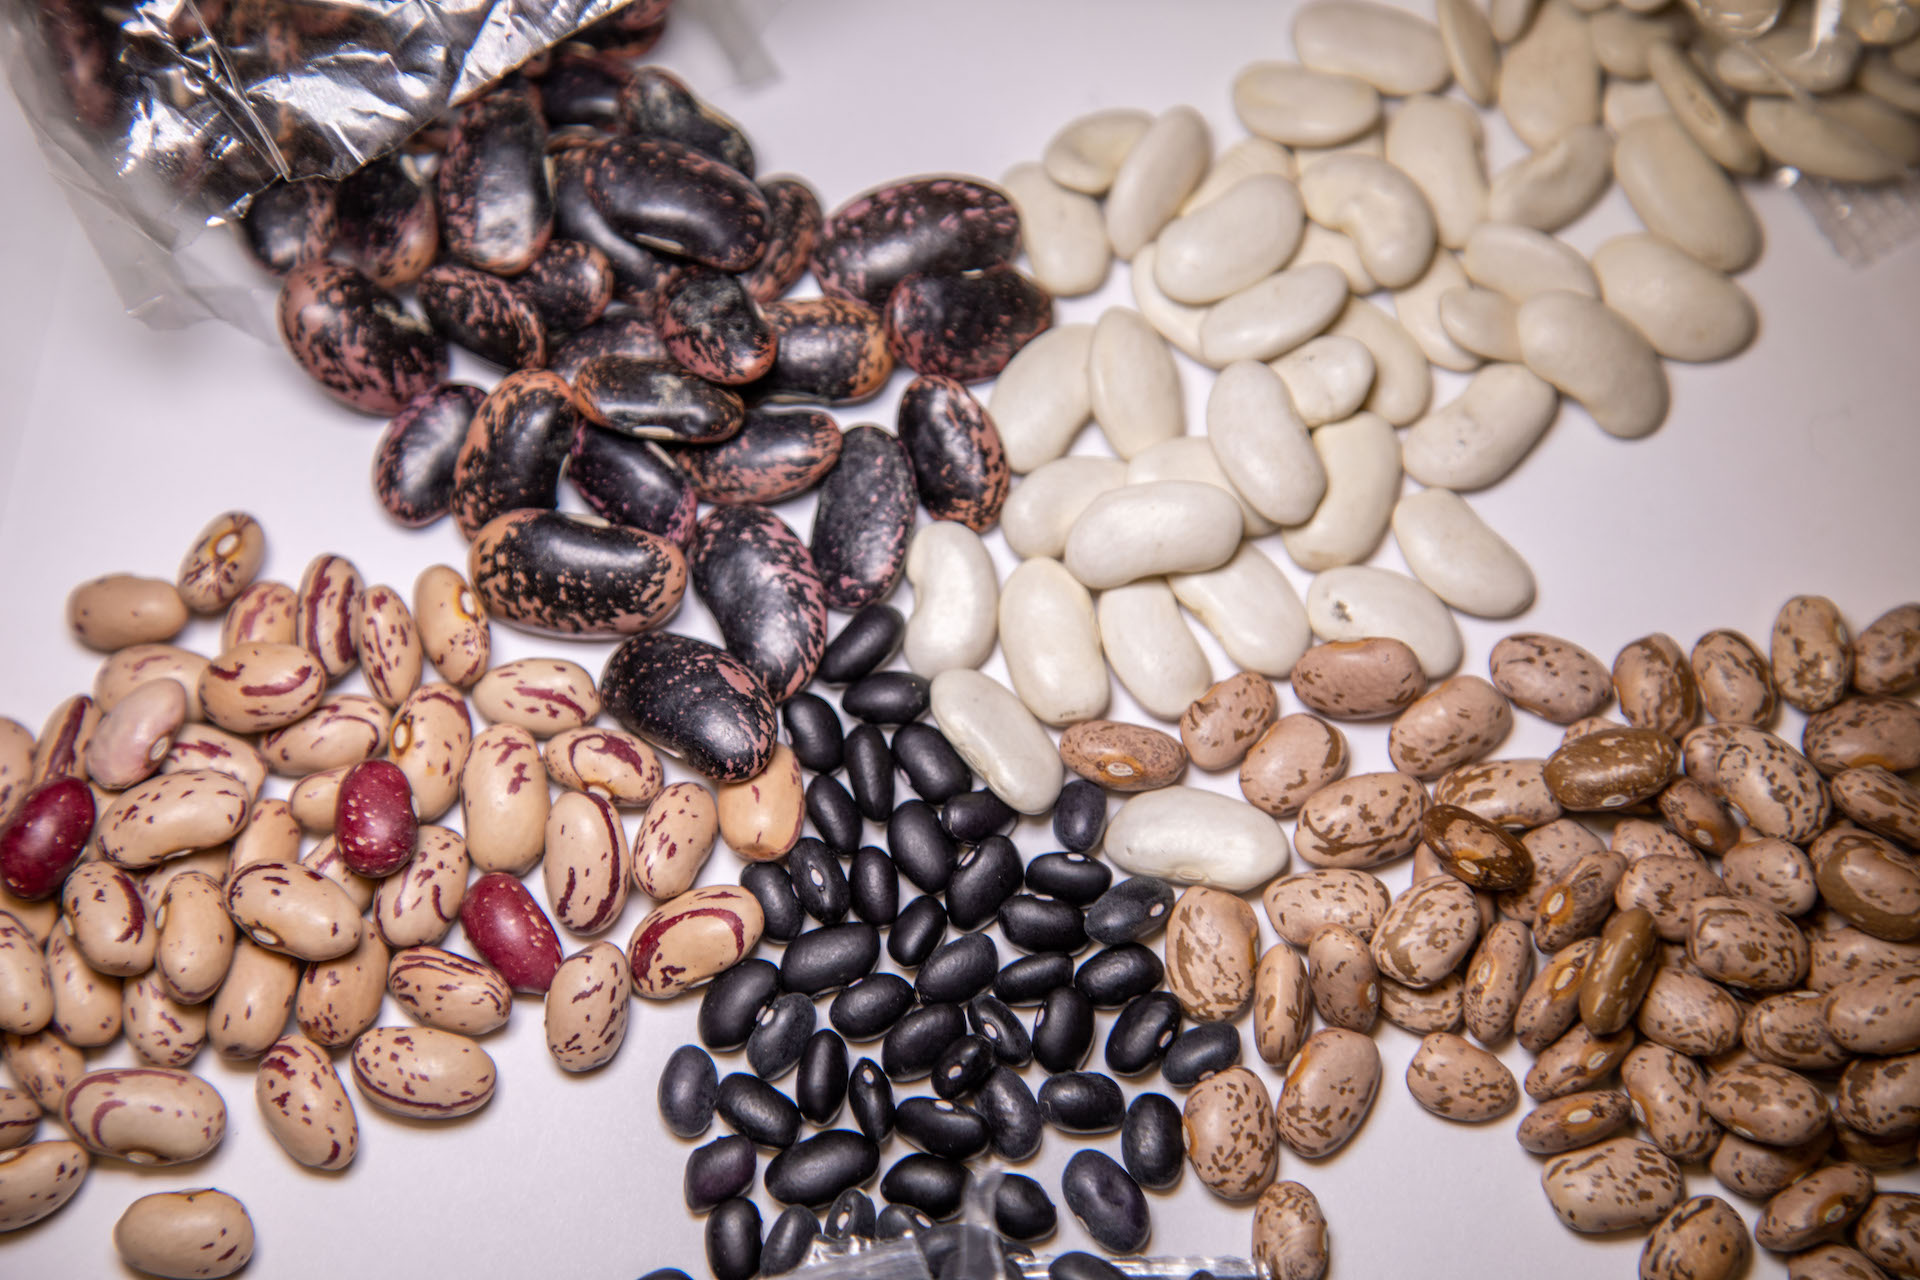 A few varieties of beans from Rancho Gordo's heirloom farm including pinto, cranberry and scarlet runners.